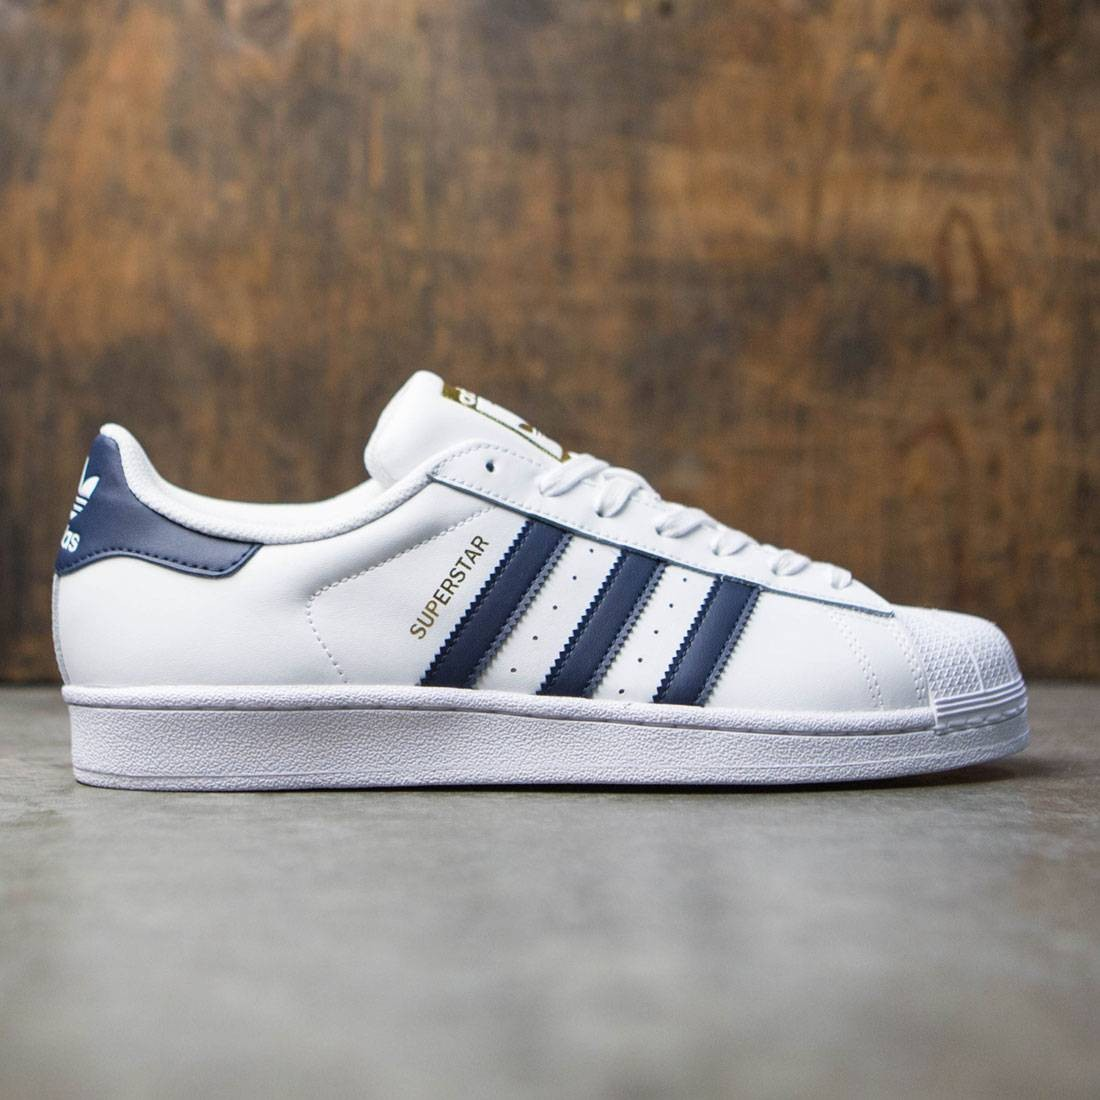 adidas superstar ebay OPP ERA